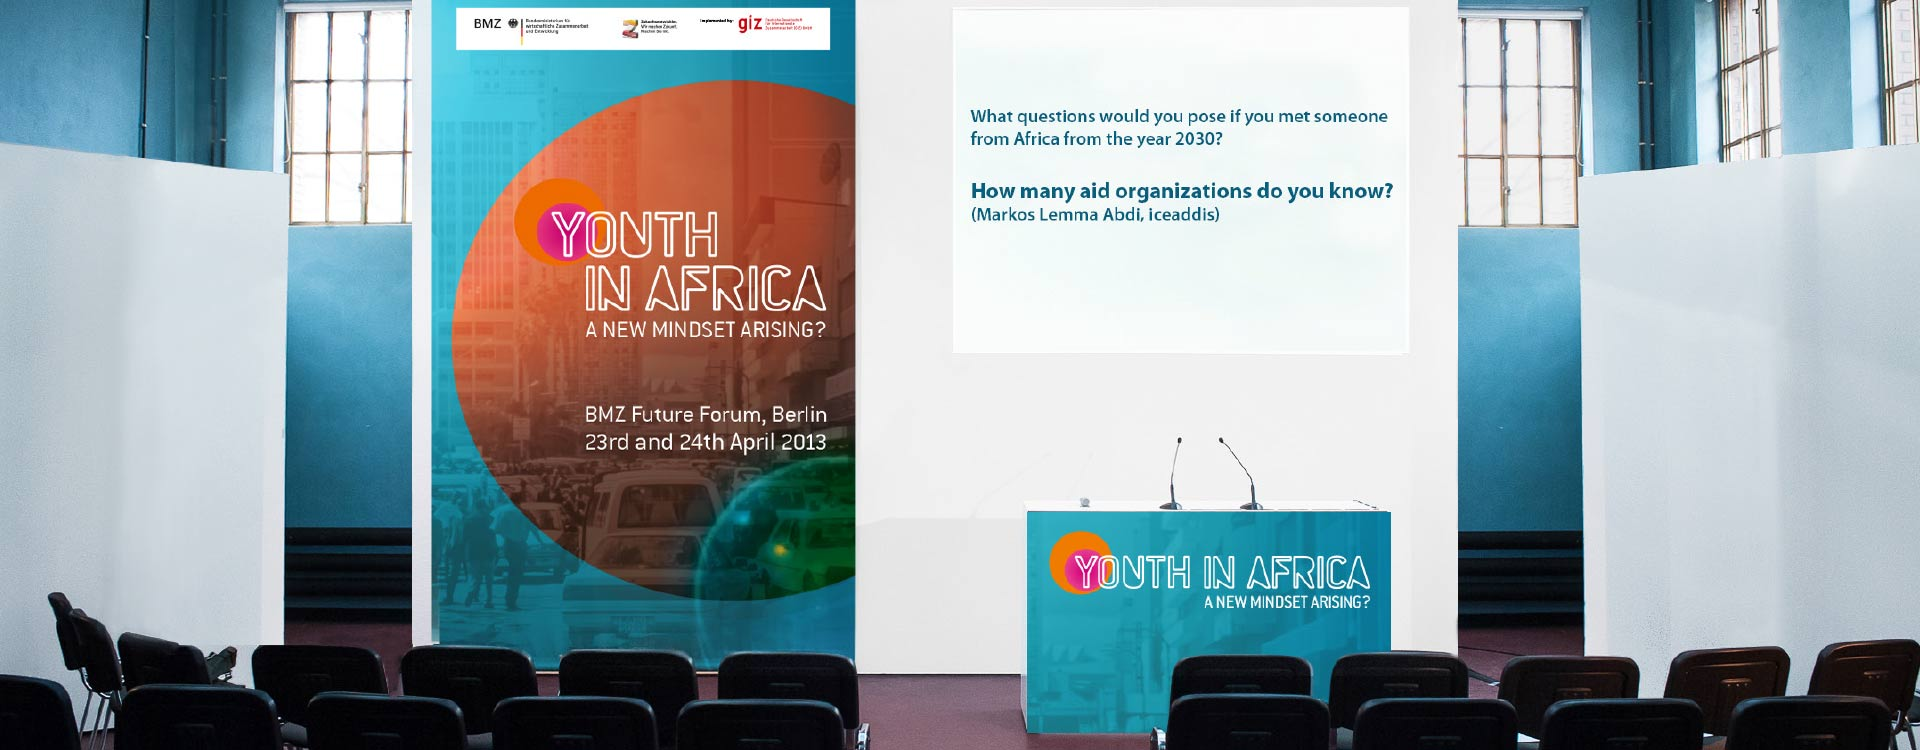 Stage and lectern for the Youth in Africa conference held by the BMZ in the Umspannwerk Kreuzberg, Berlin; Design: Kattrin Richter | Graphic Design Studio